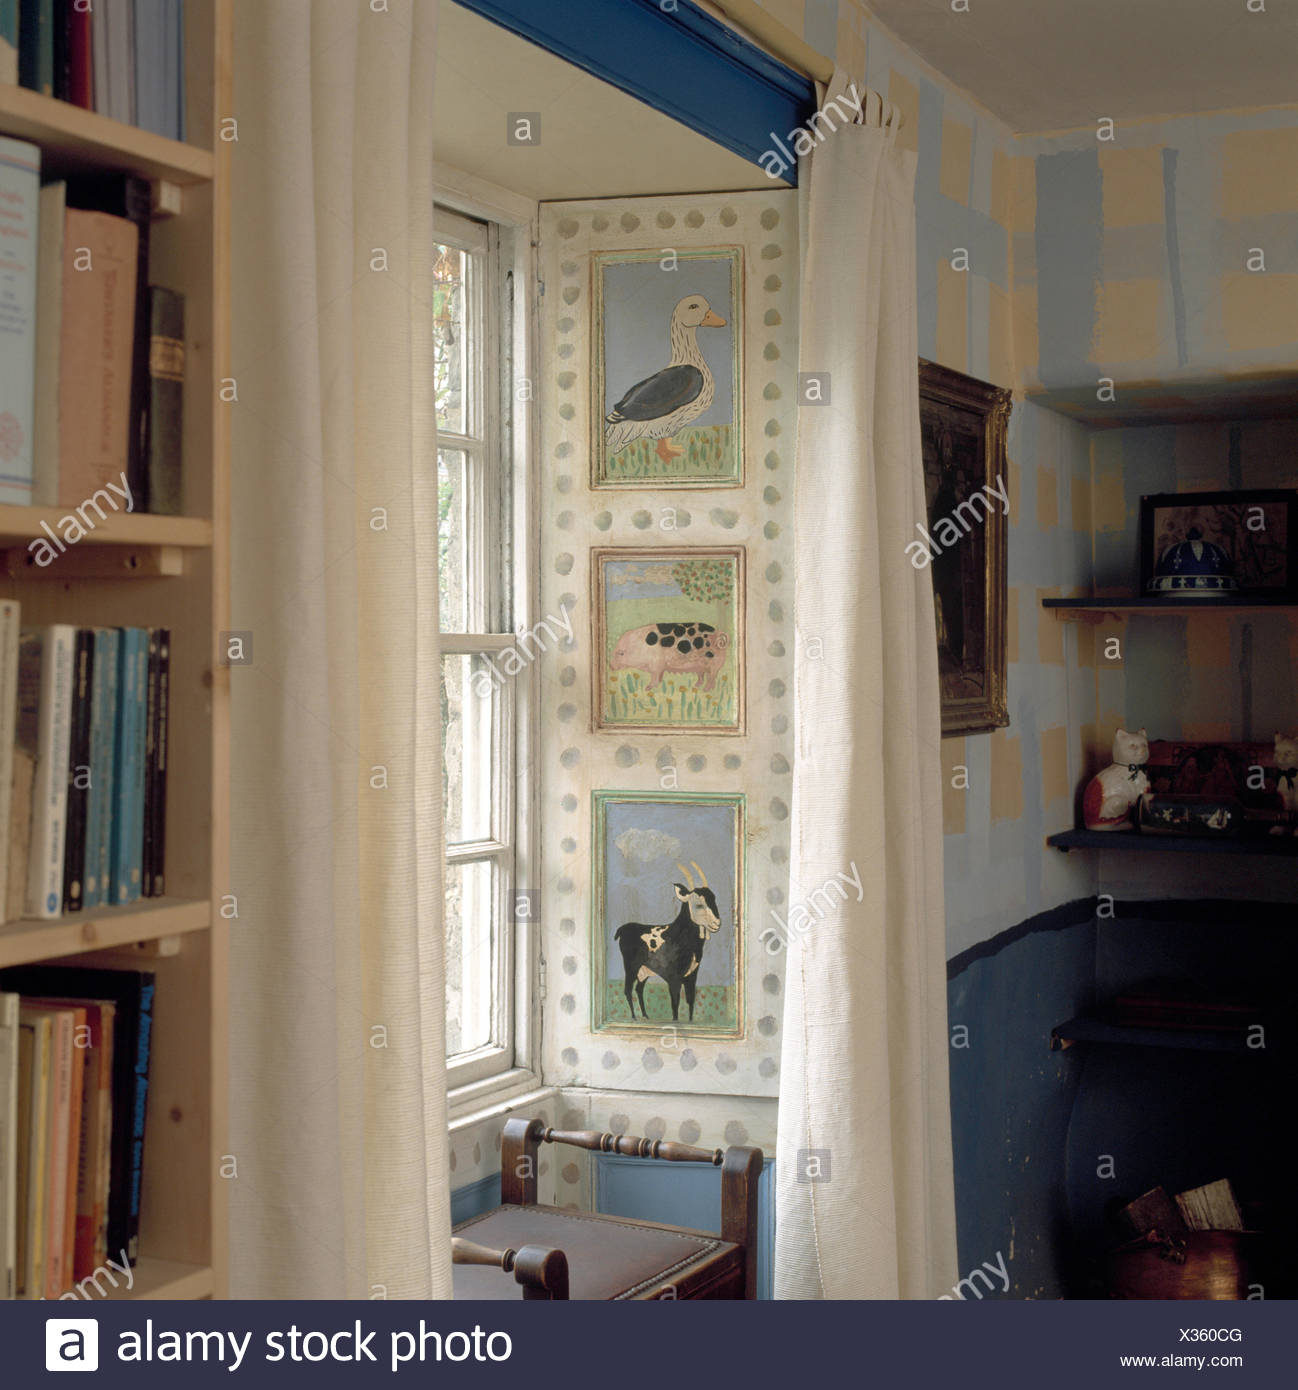 Bedroom With White Curtains On Window With Shutters Painted